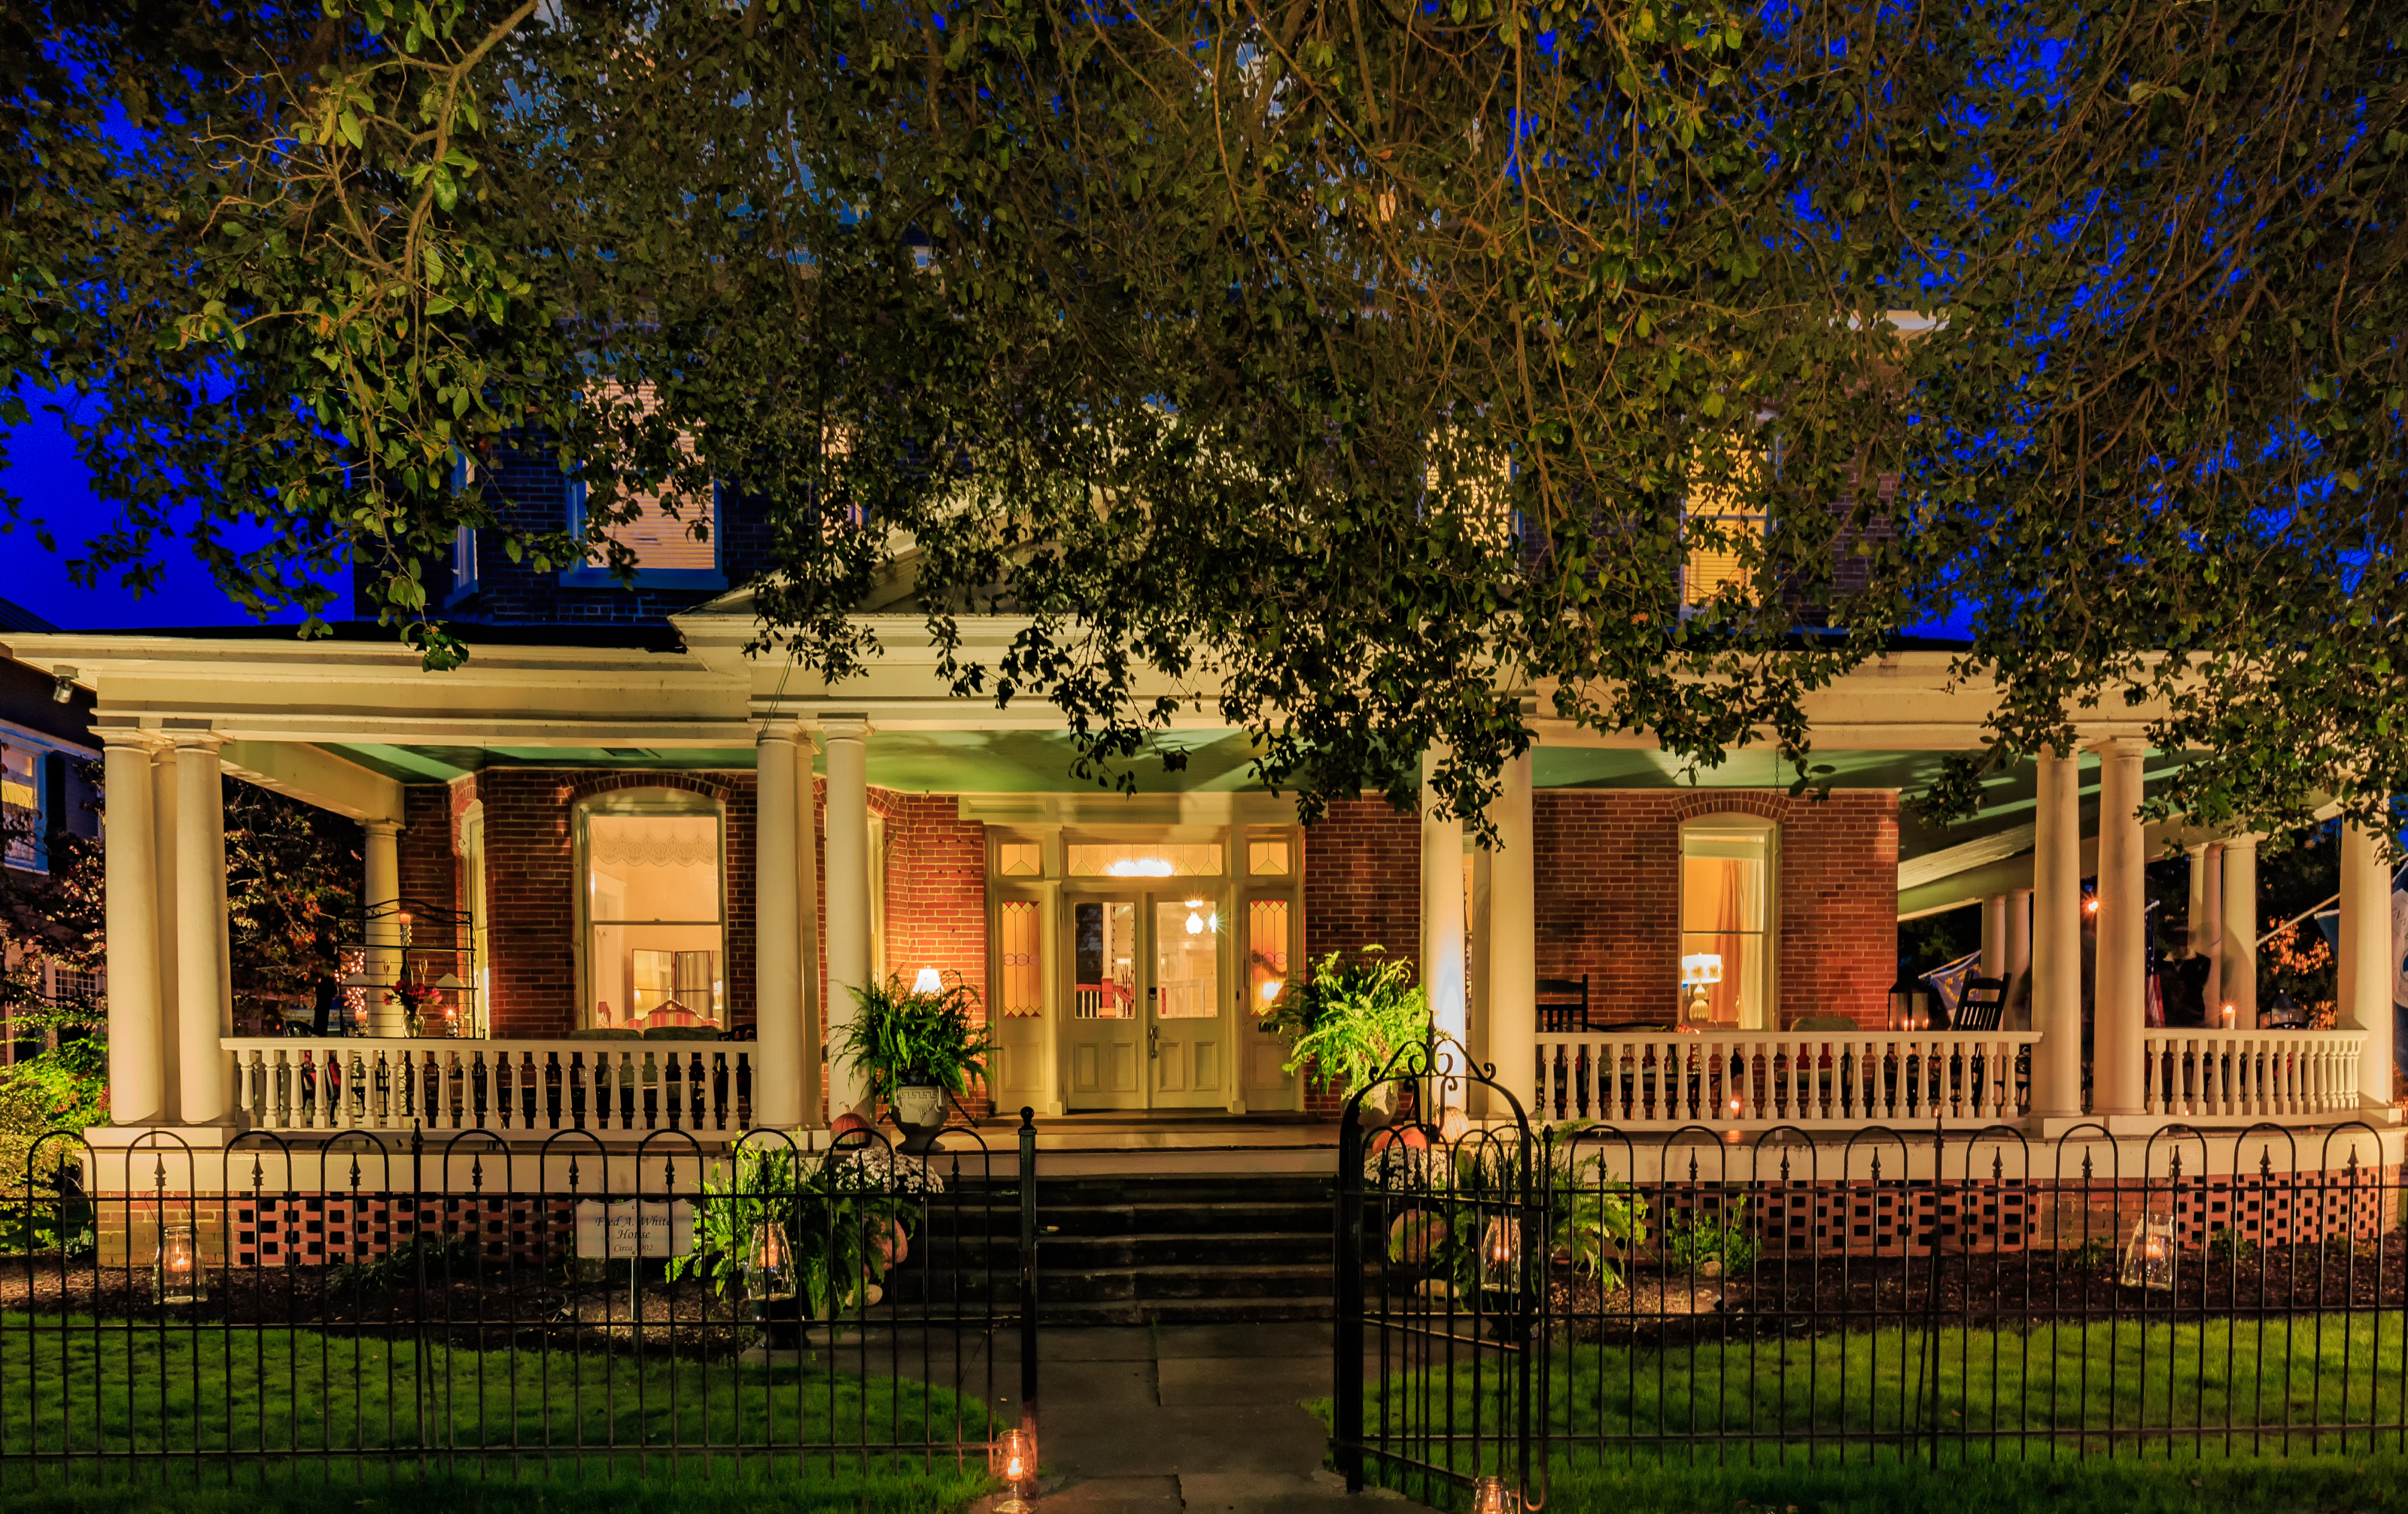 Evening time at our Edenton, North Carolina Hotel